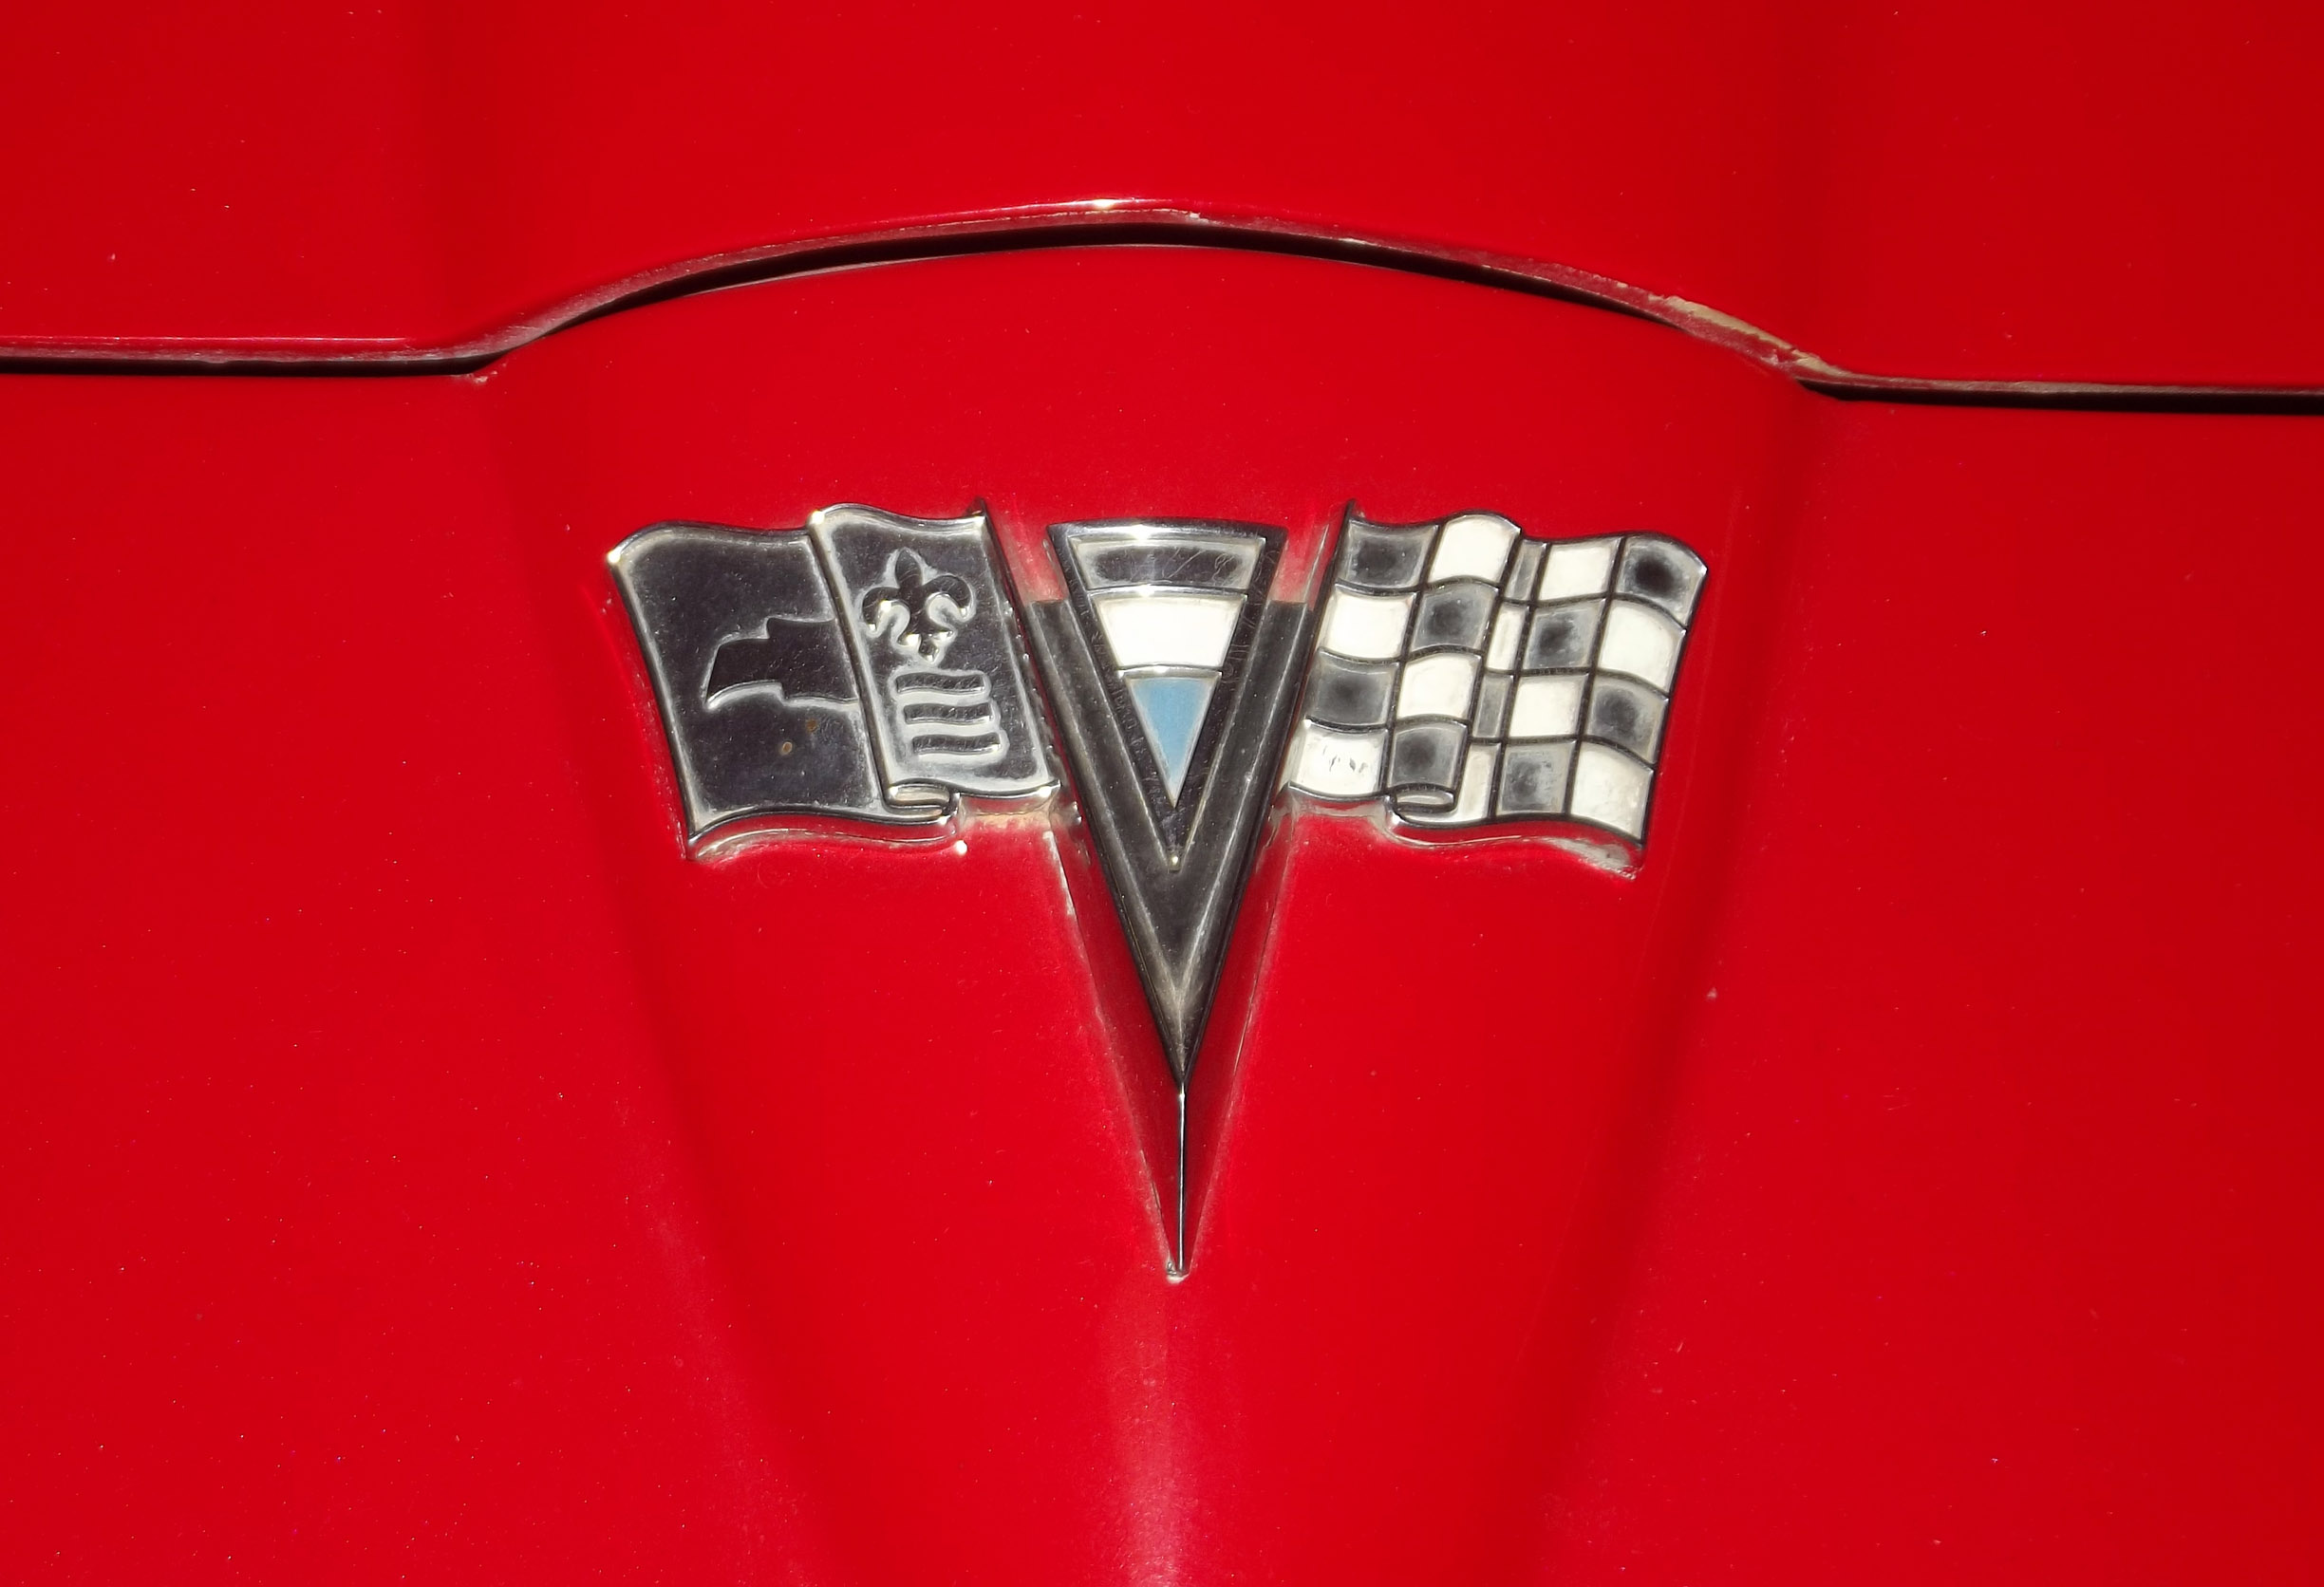 Detail of badge on bright red car